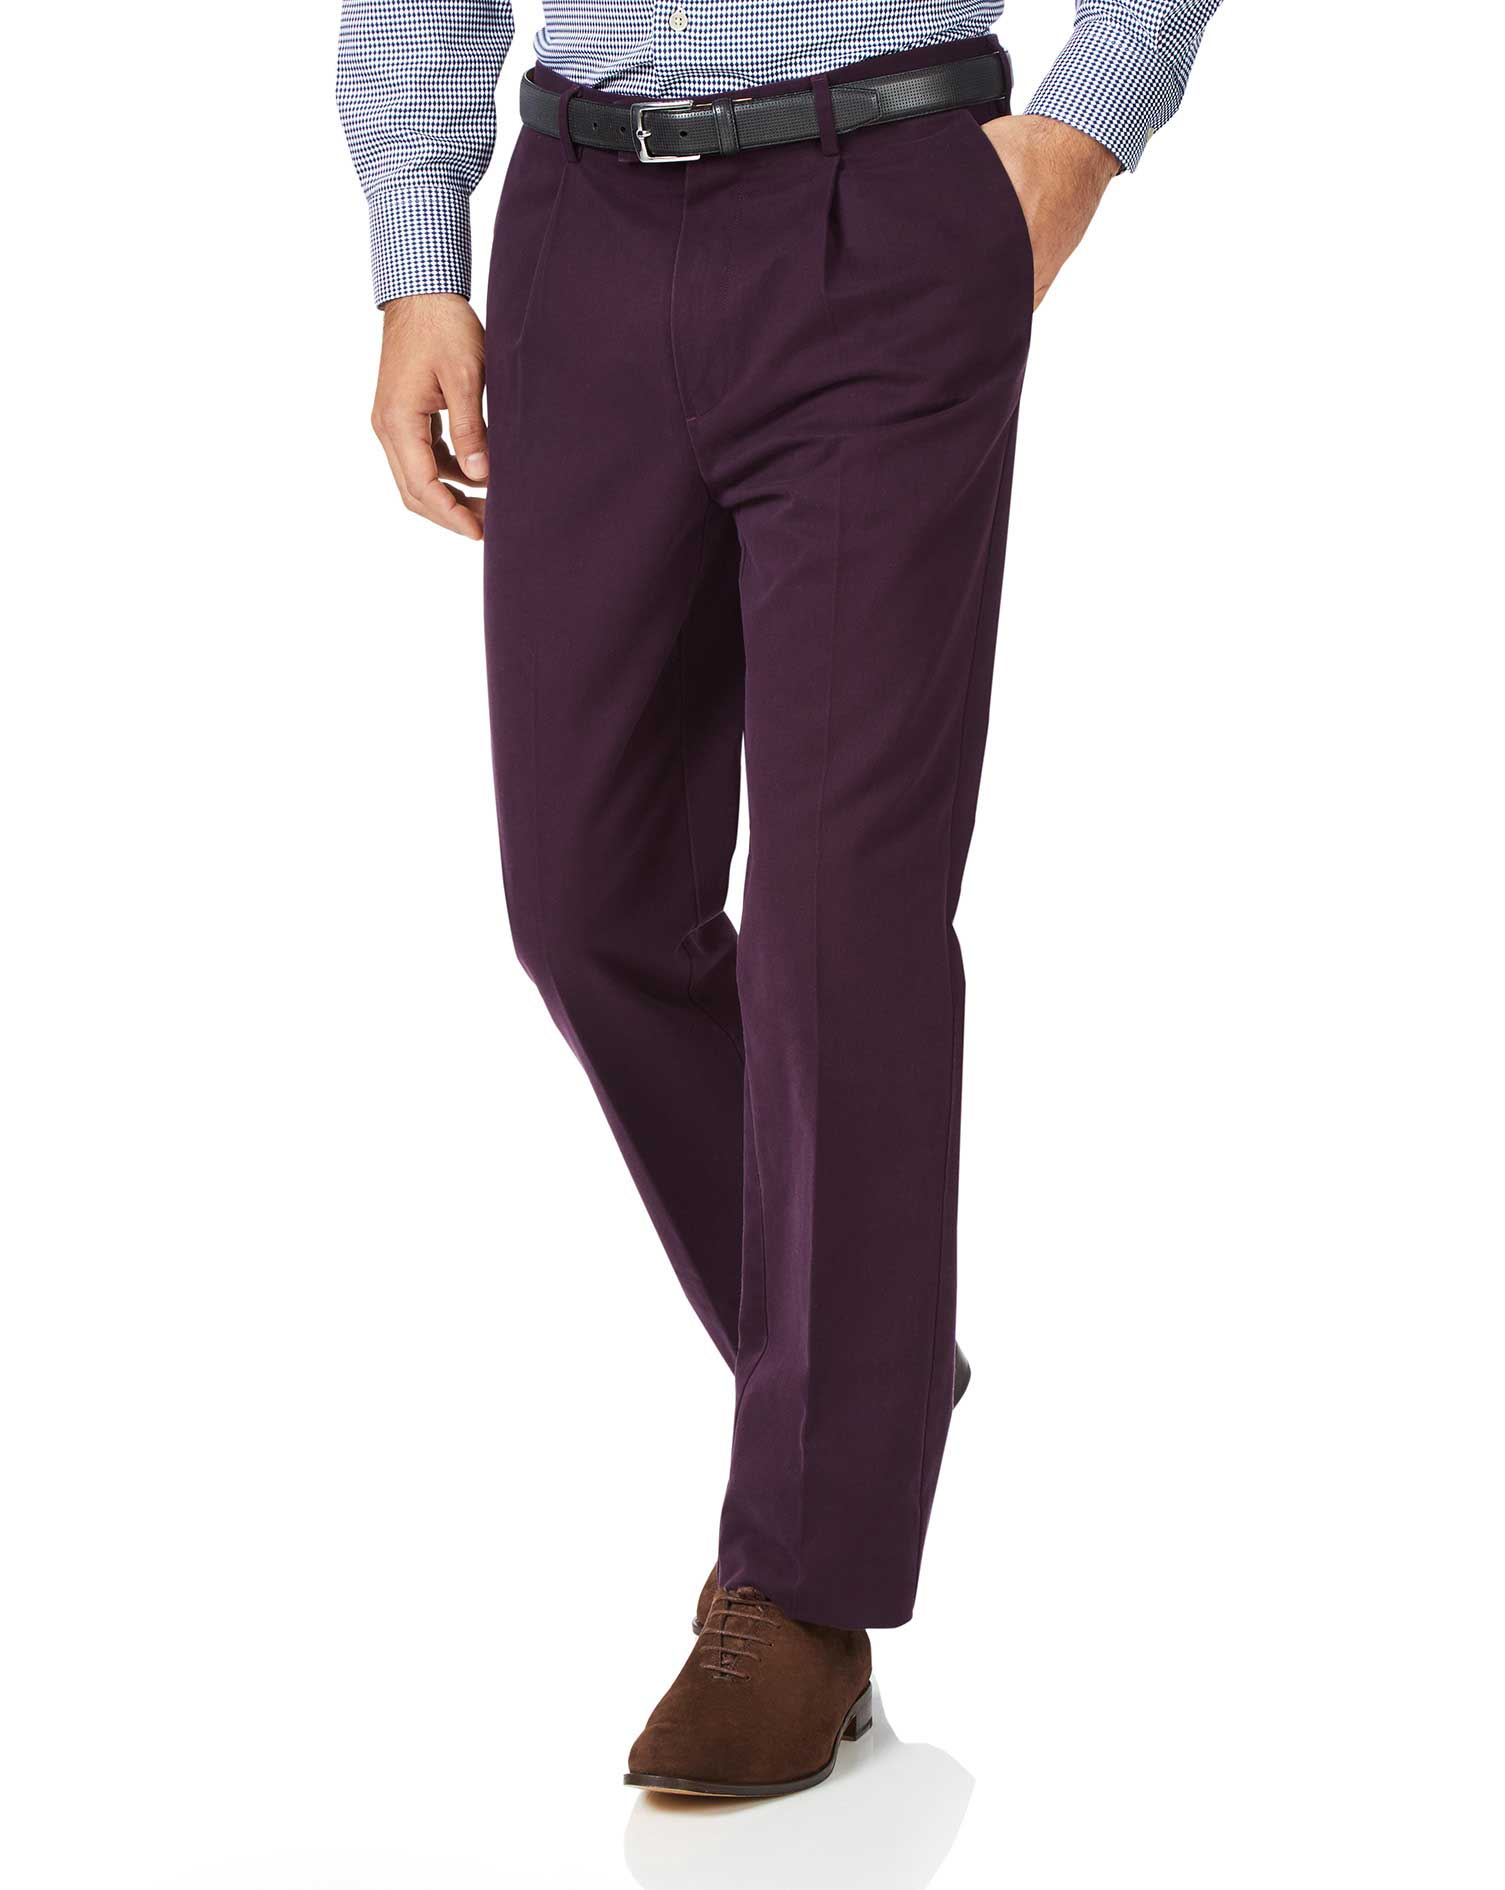 wine classic fit single pleat non-iron cotton chino pants size w44 l38 by charles tyrwhitt